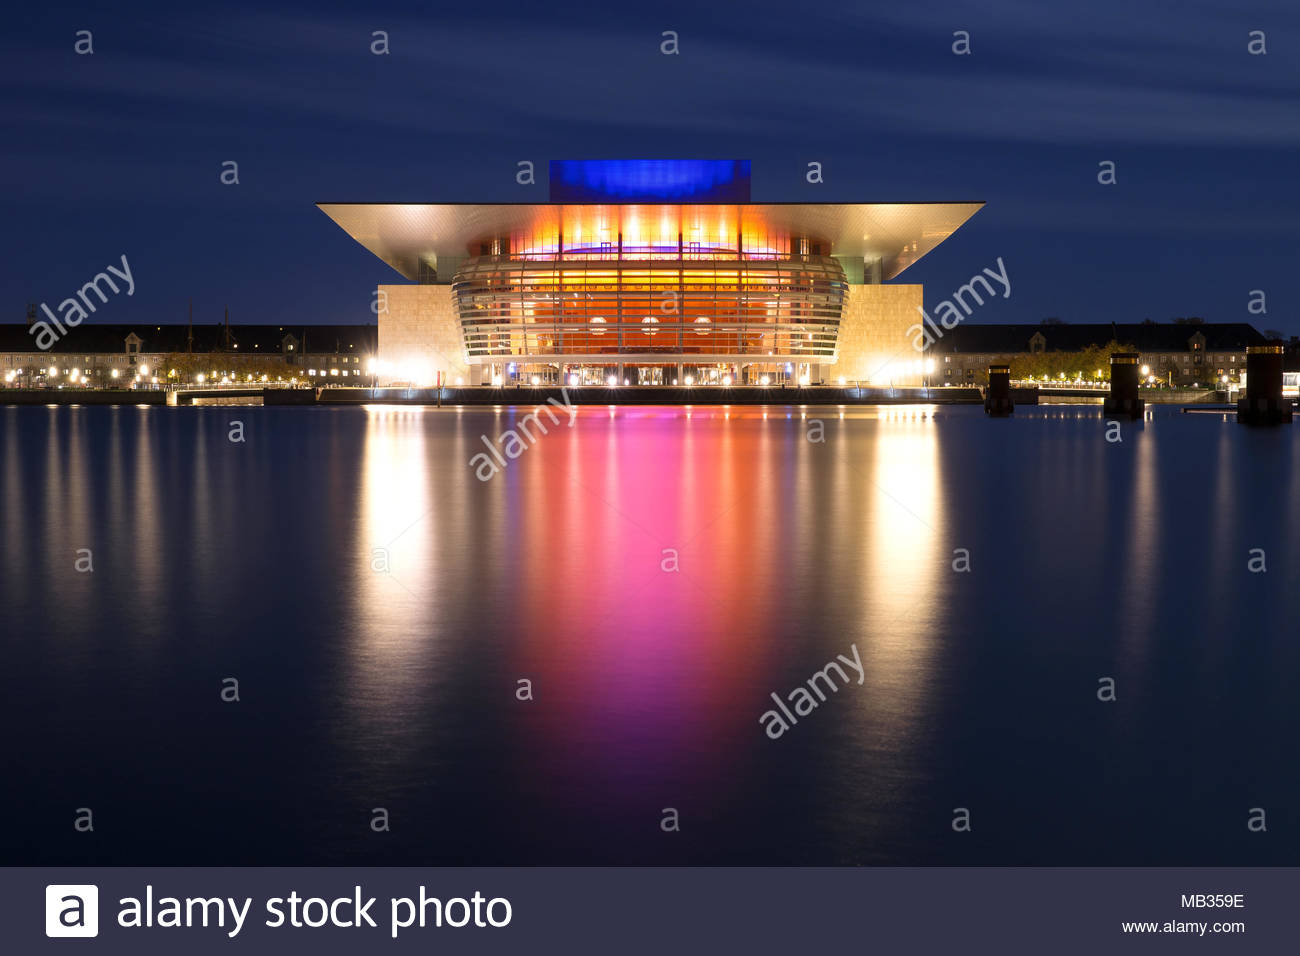 A low-light exposure of the contemporary Copenhagen Opera House, Denmark. The colours from the building at night reflect beautifully across the water. Stock Photo